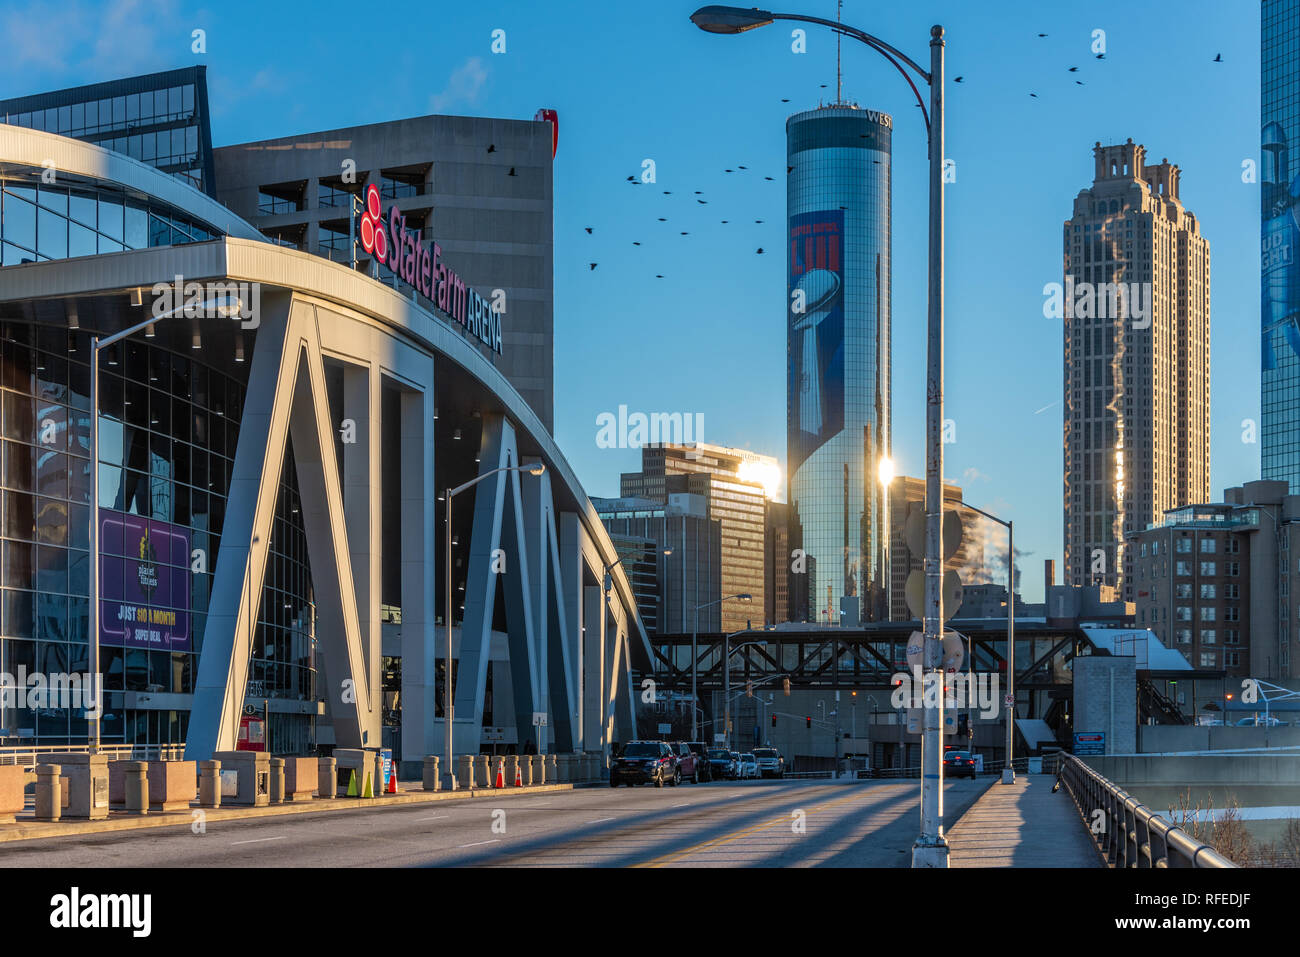 Downtown Atlanta, Georgia sunrise from the State Farm Arena with Super Bowl LIII supergraphics adorning the iconic Westin Peachtree Plaza tower. (USA) - Stock Image